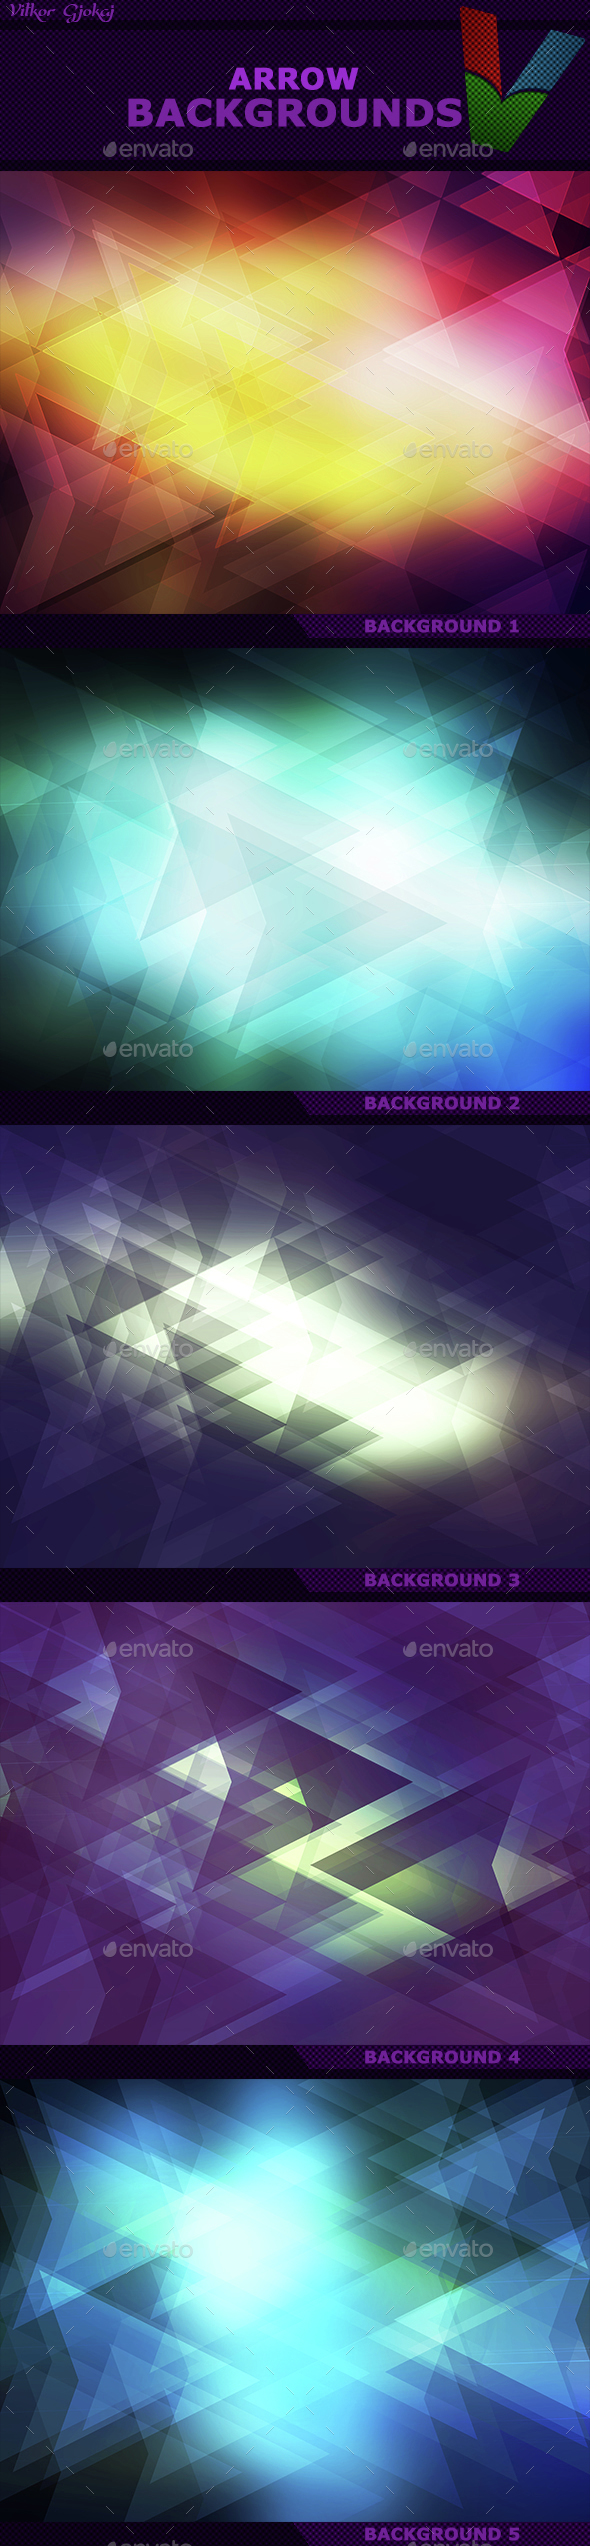 Arrow Backgrounds I - Abstract Backgrounds